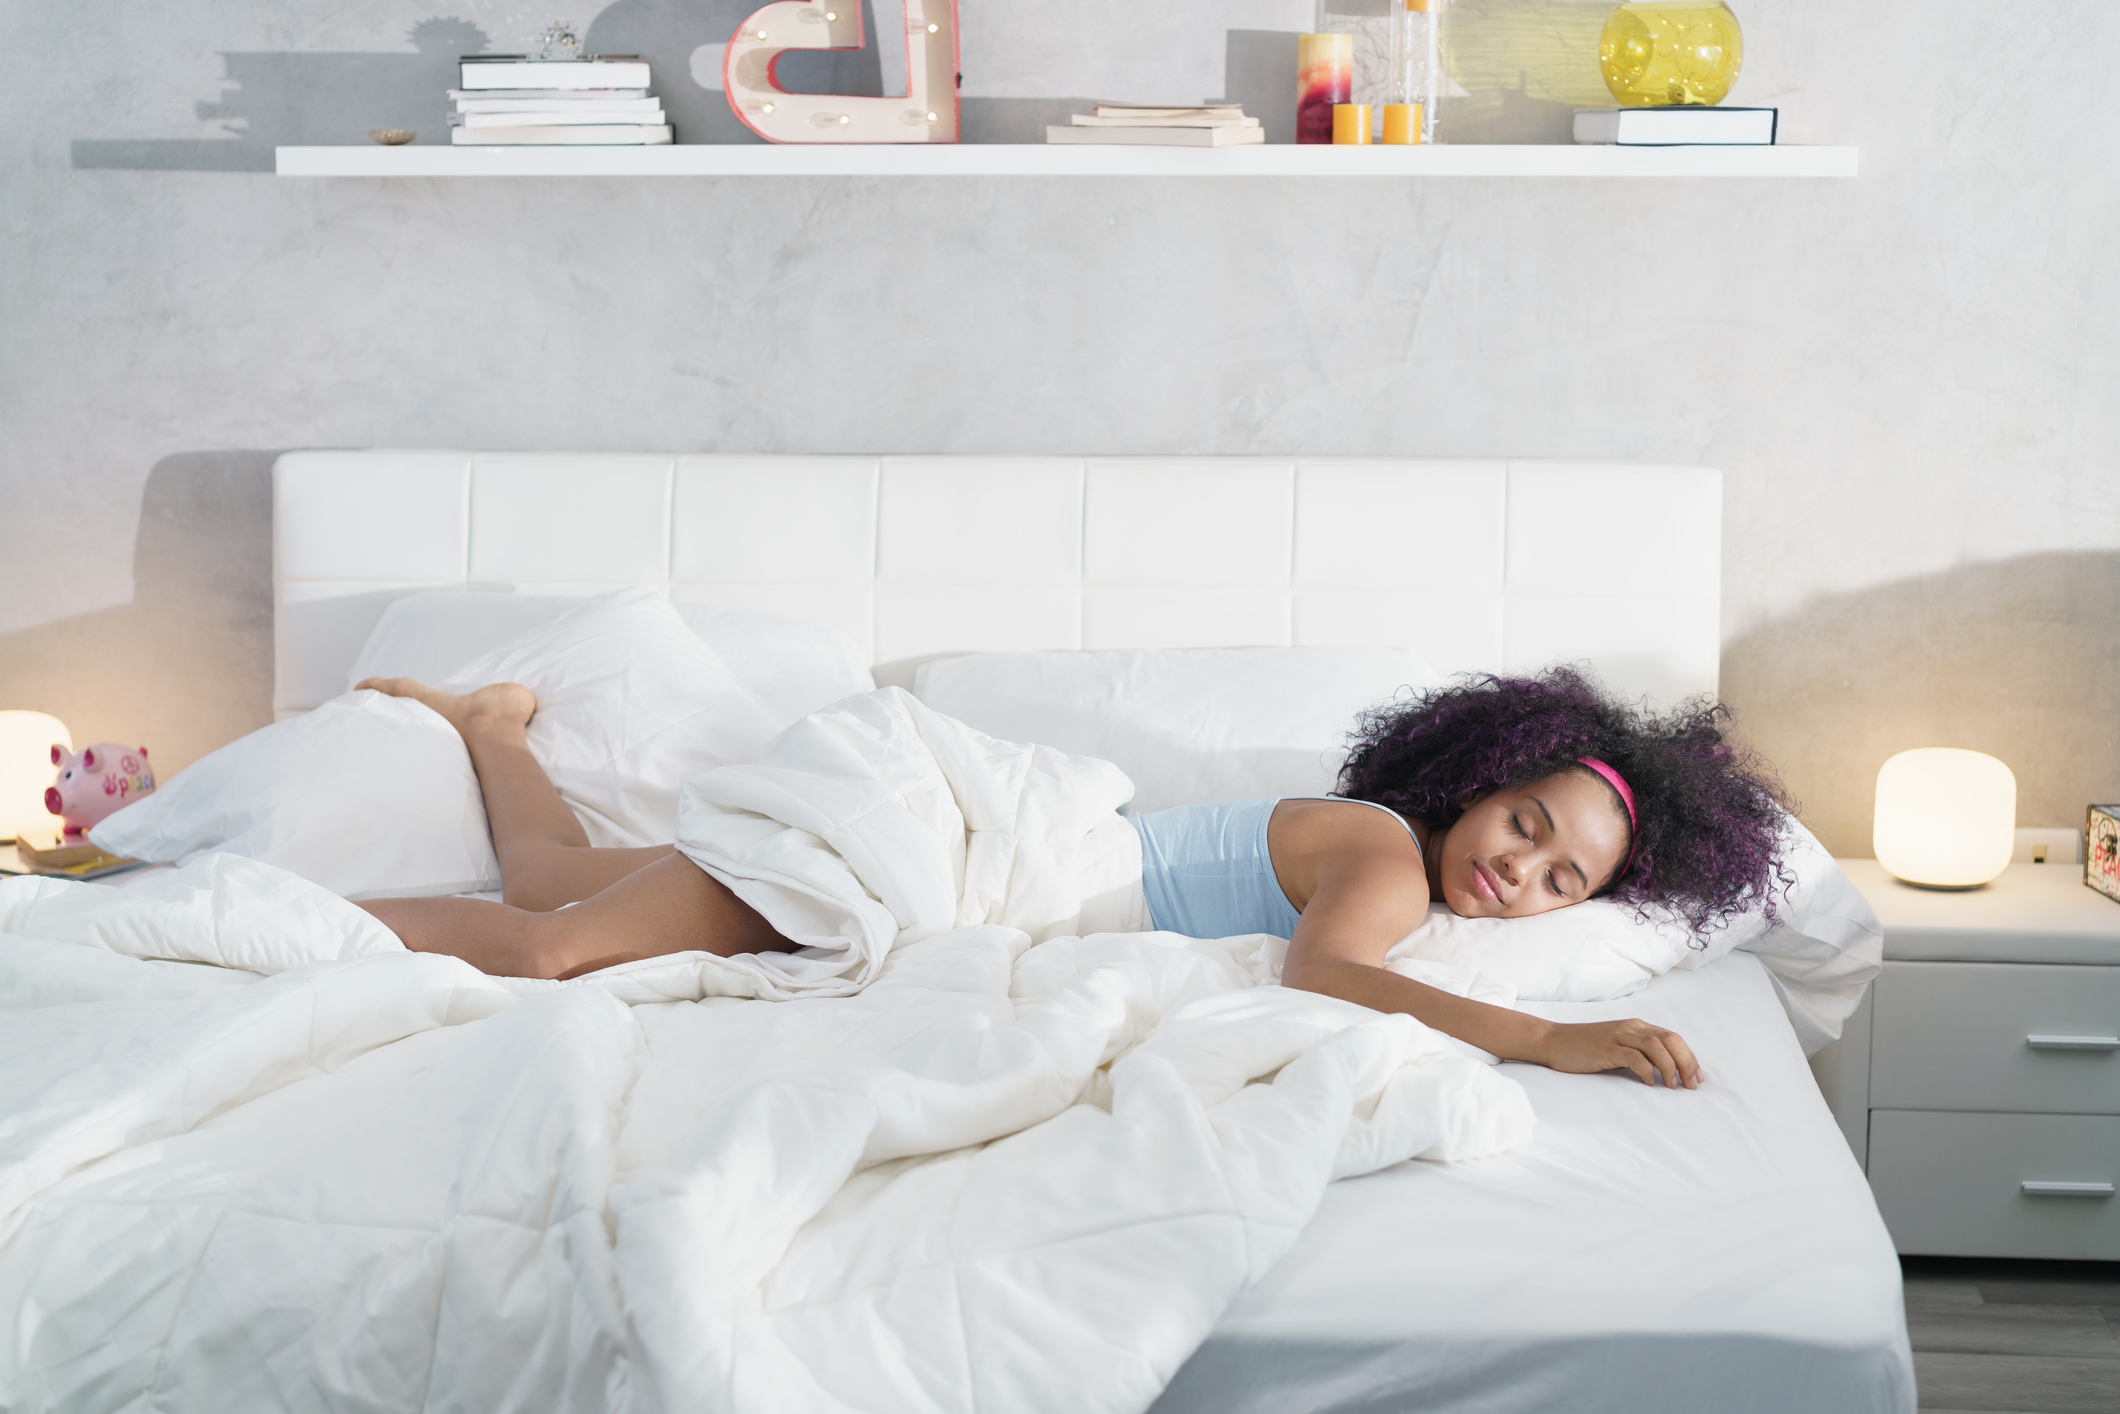 woman sprawled out comfy in bed